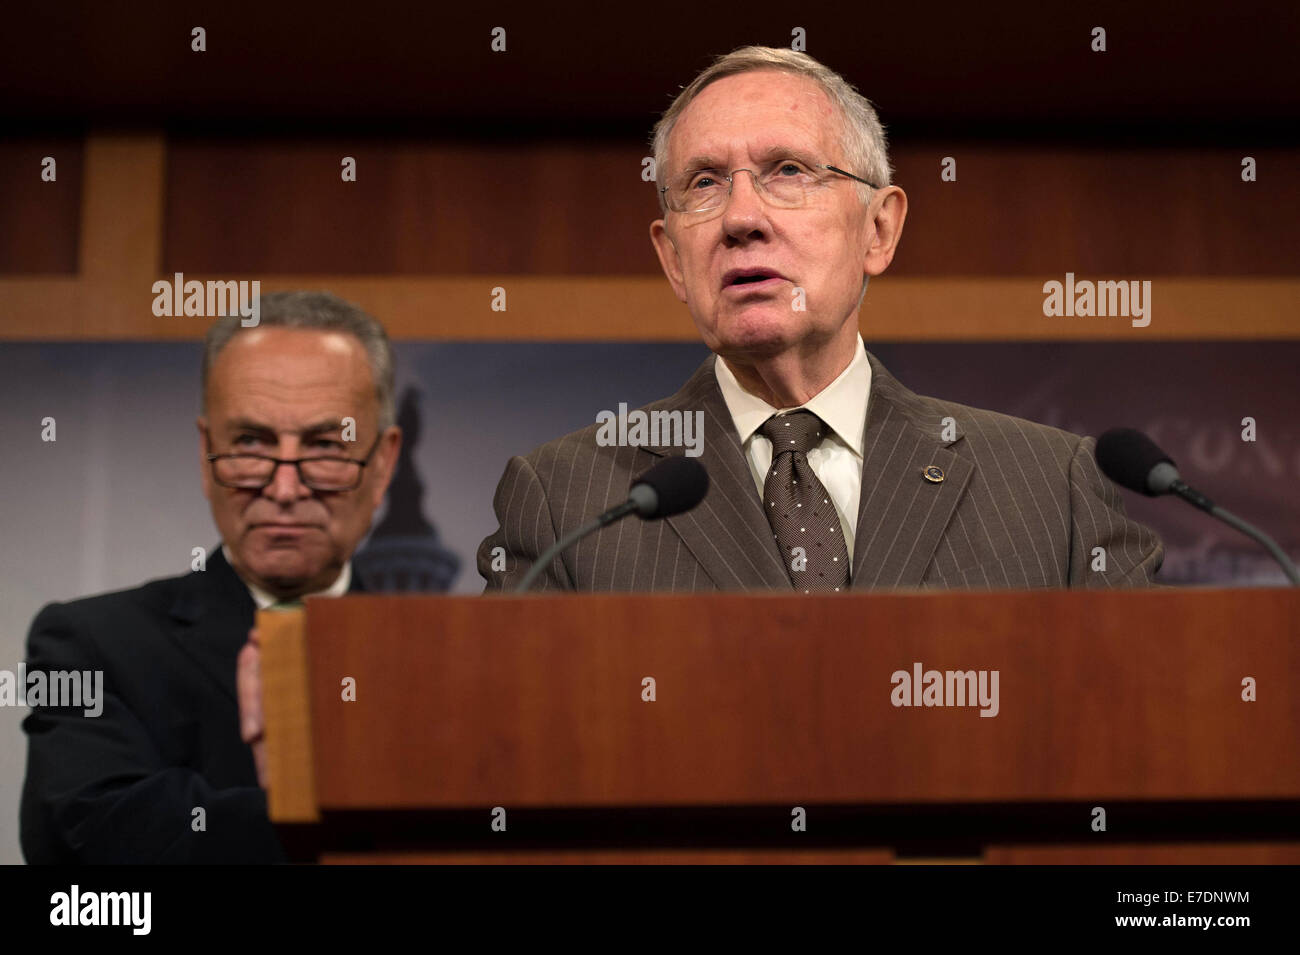 US Democratic Senators Harry Reid calls for bipartisan cooperation in giving the President the ability to combat - Stock Image